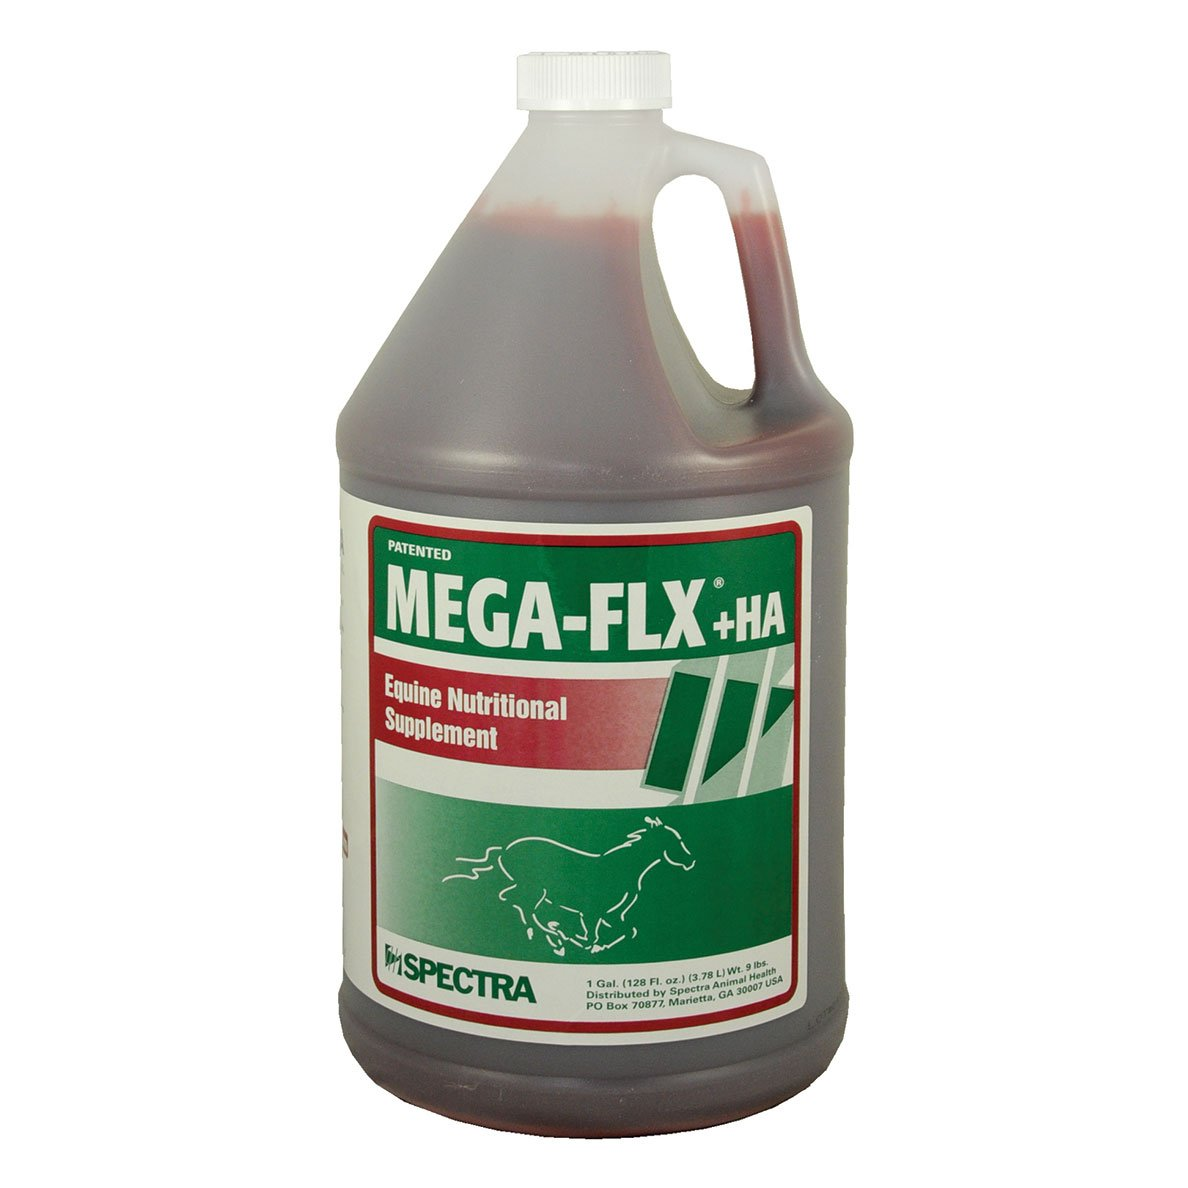 Mega-Flx + HA Equine, Gallon (128 oz) by Mega-Flx